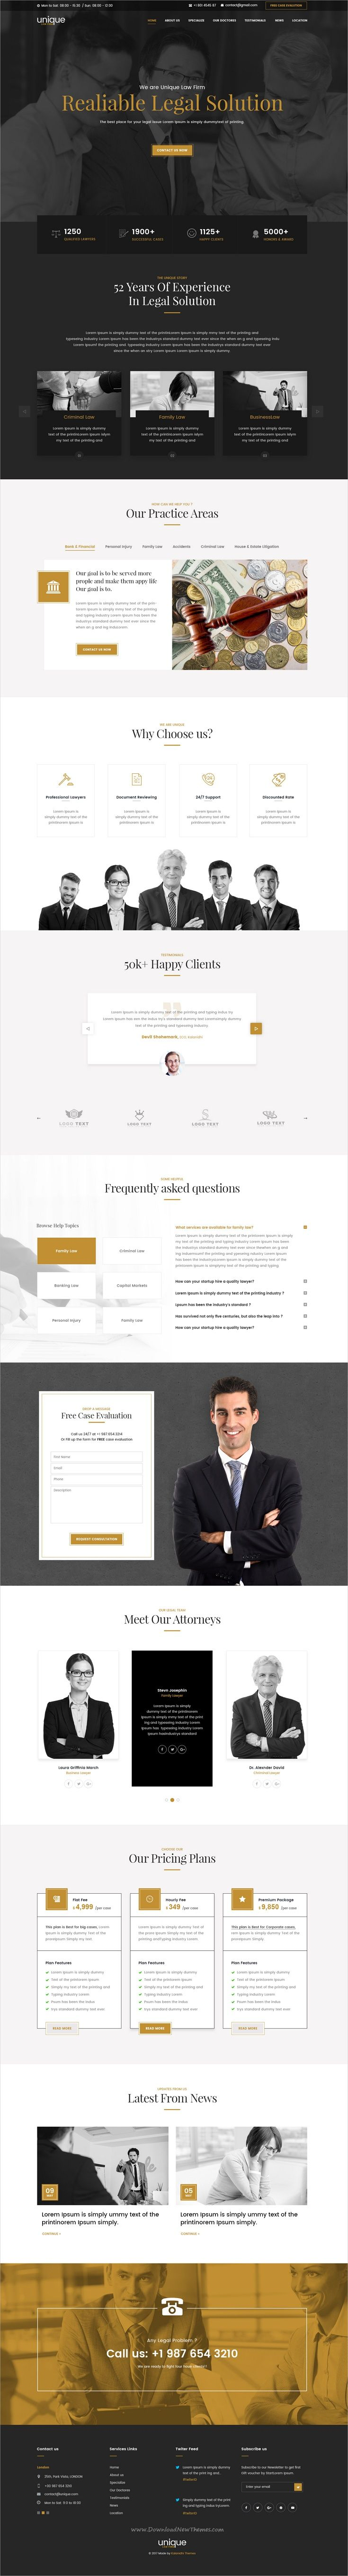 Unique is clean and modern design #PSD template for #lawyer and #law firms landing page website download now➩ https://themeforest.net/item/unique-law-firm-landing-page-psd-template/19823449?ref=Datasata